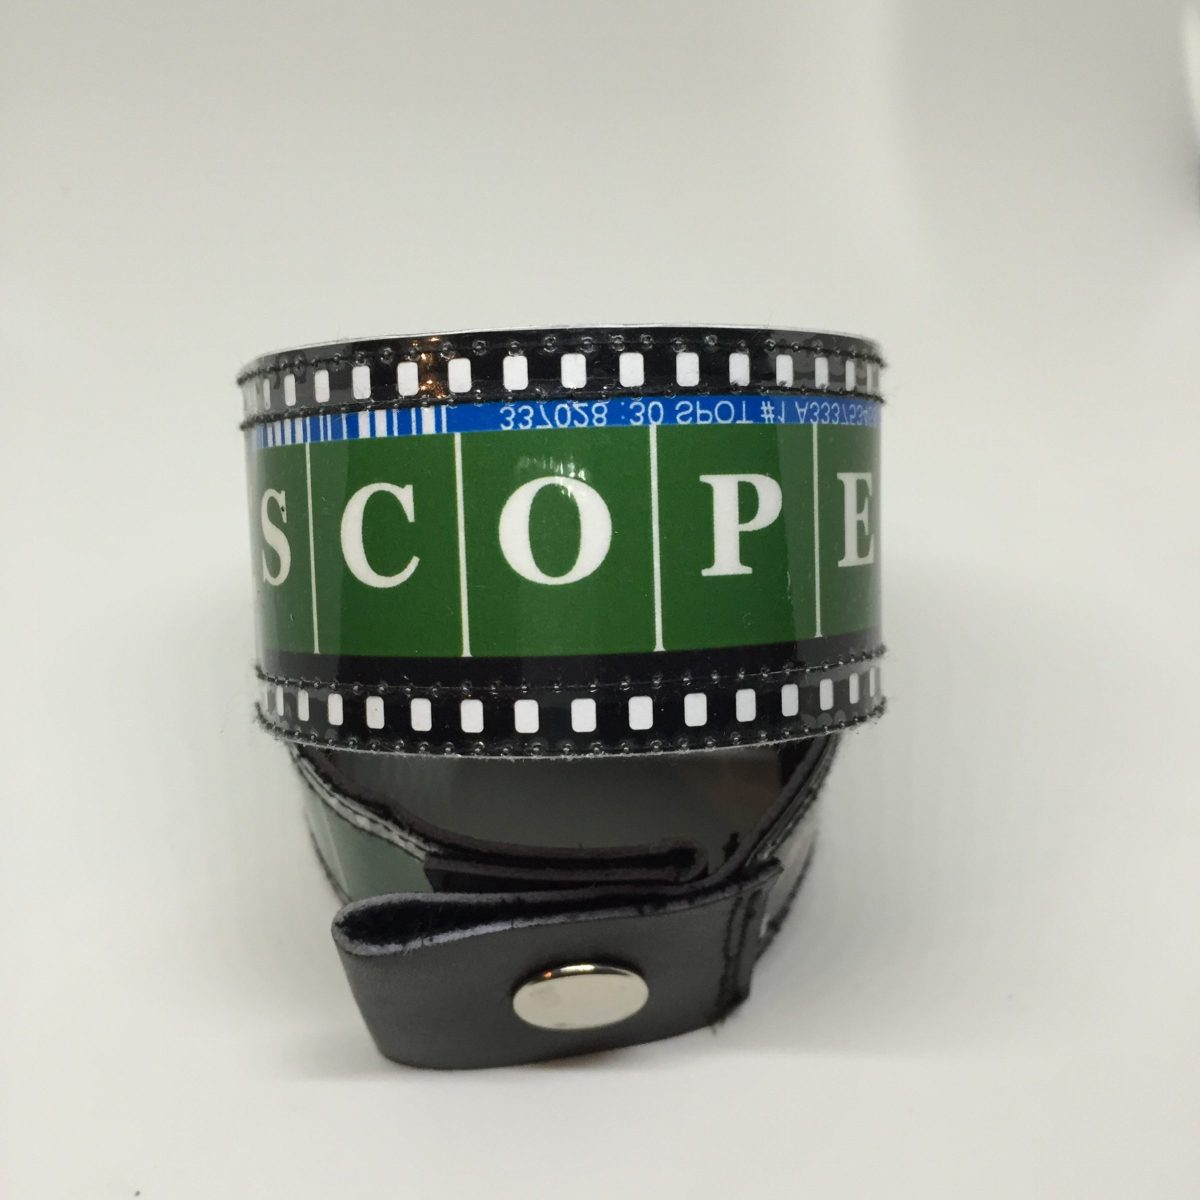 Green Scope Bracelet Flat $25